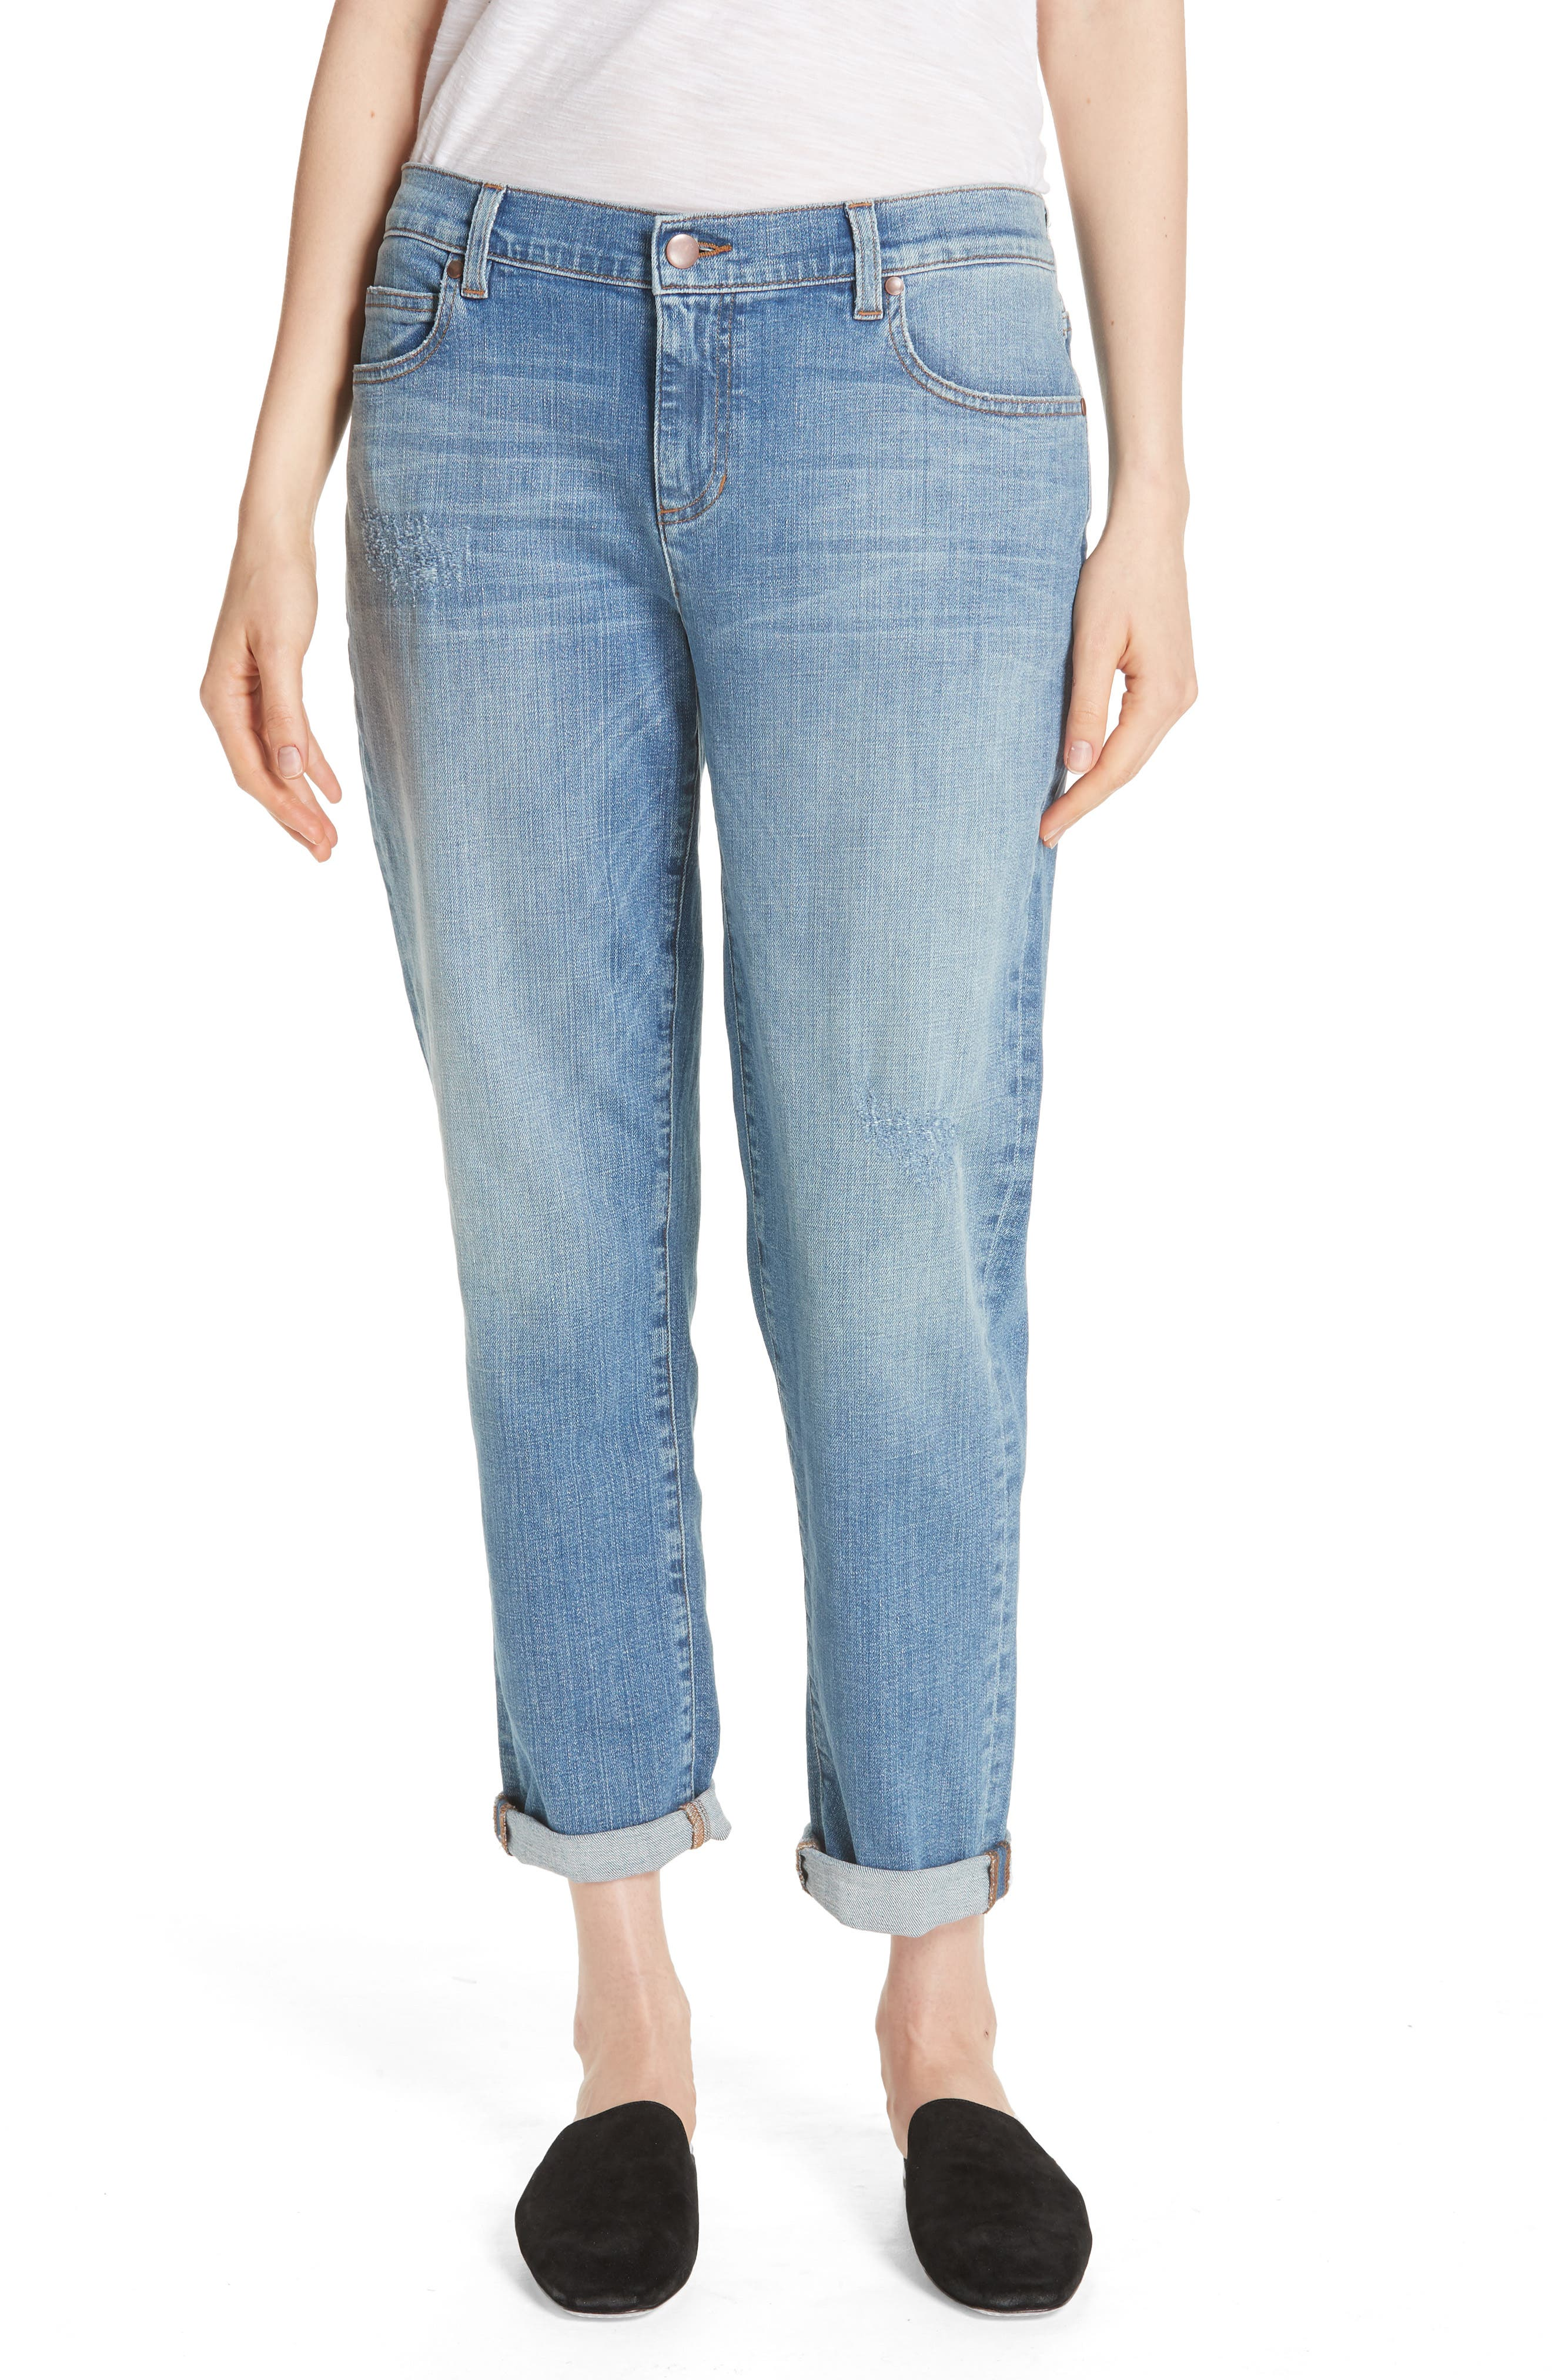 Stretch Organic Cotton Boyfriend Jeans,                             Main thumbnail 1, color,                             ABRADED SKY BLUE